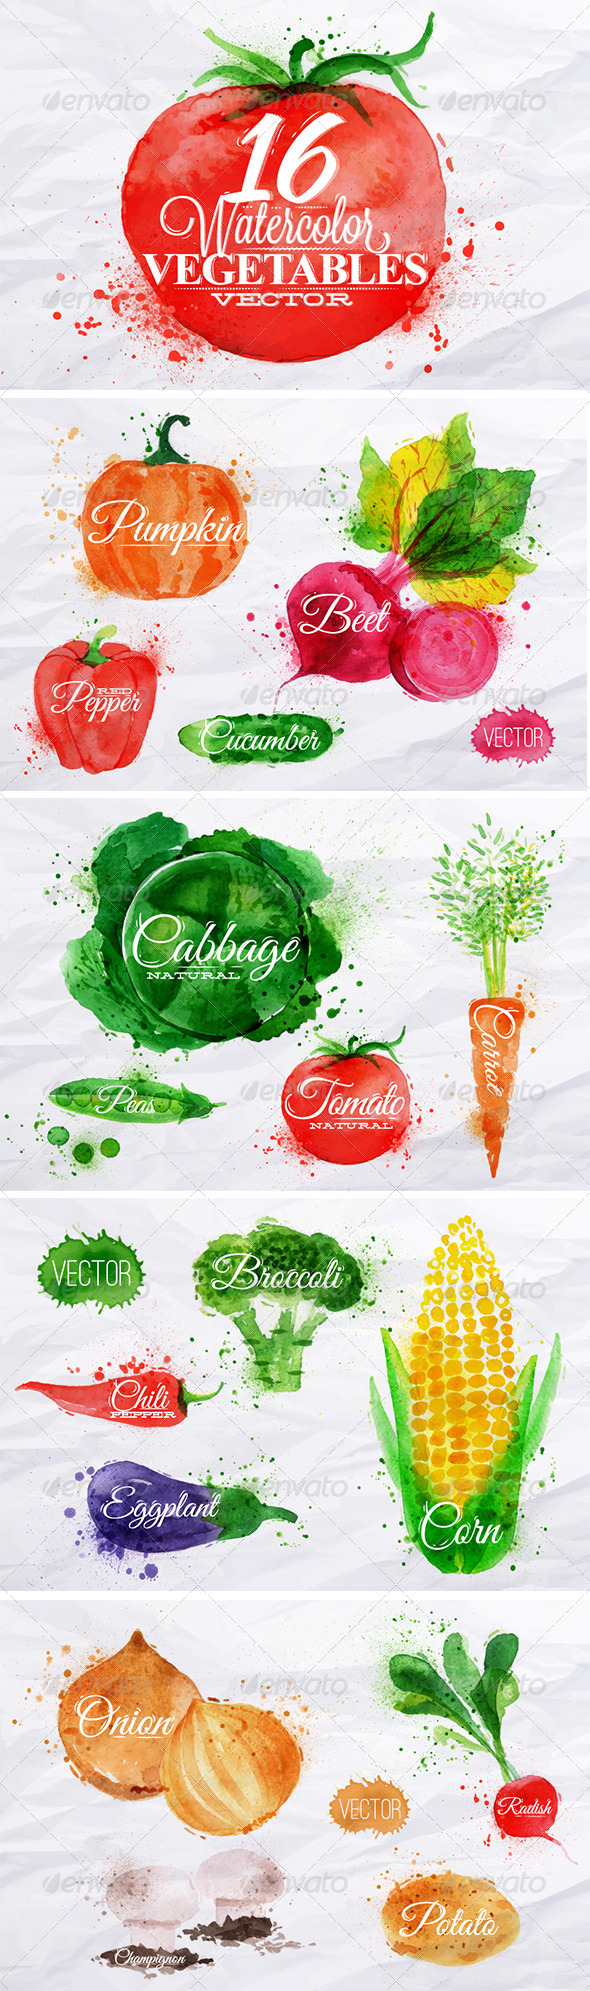 GraphicRiver Vegetables Watercolor 7901997